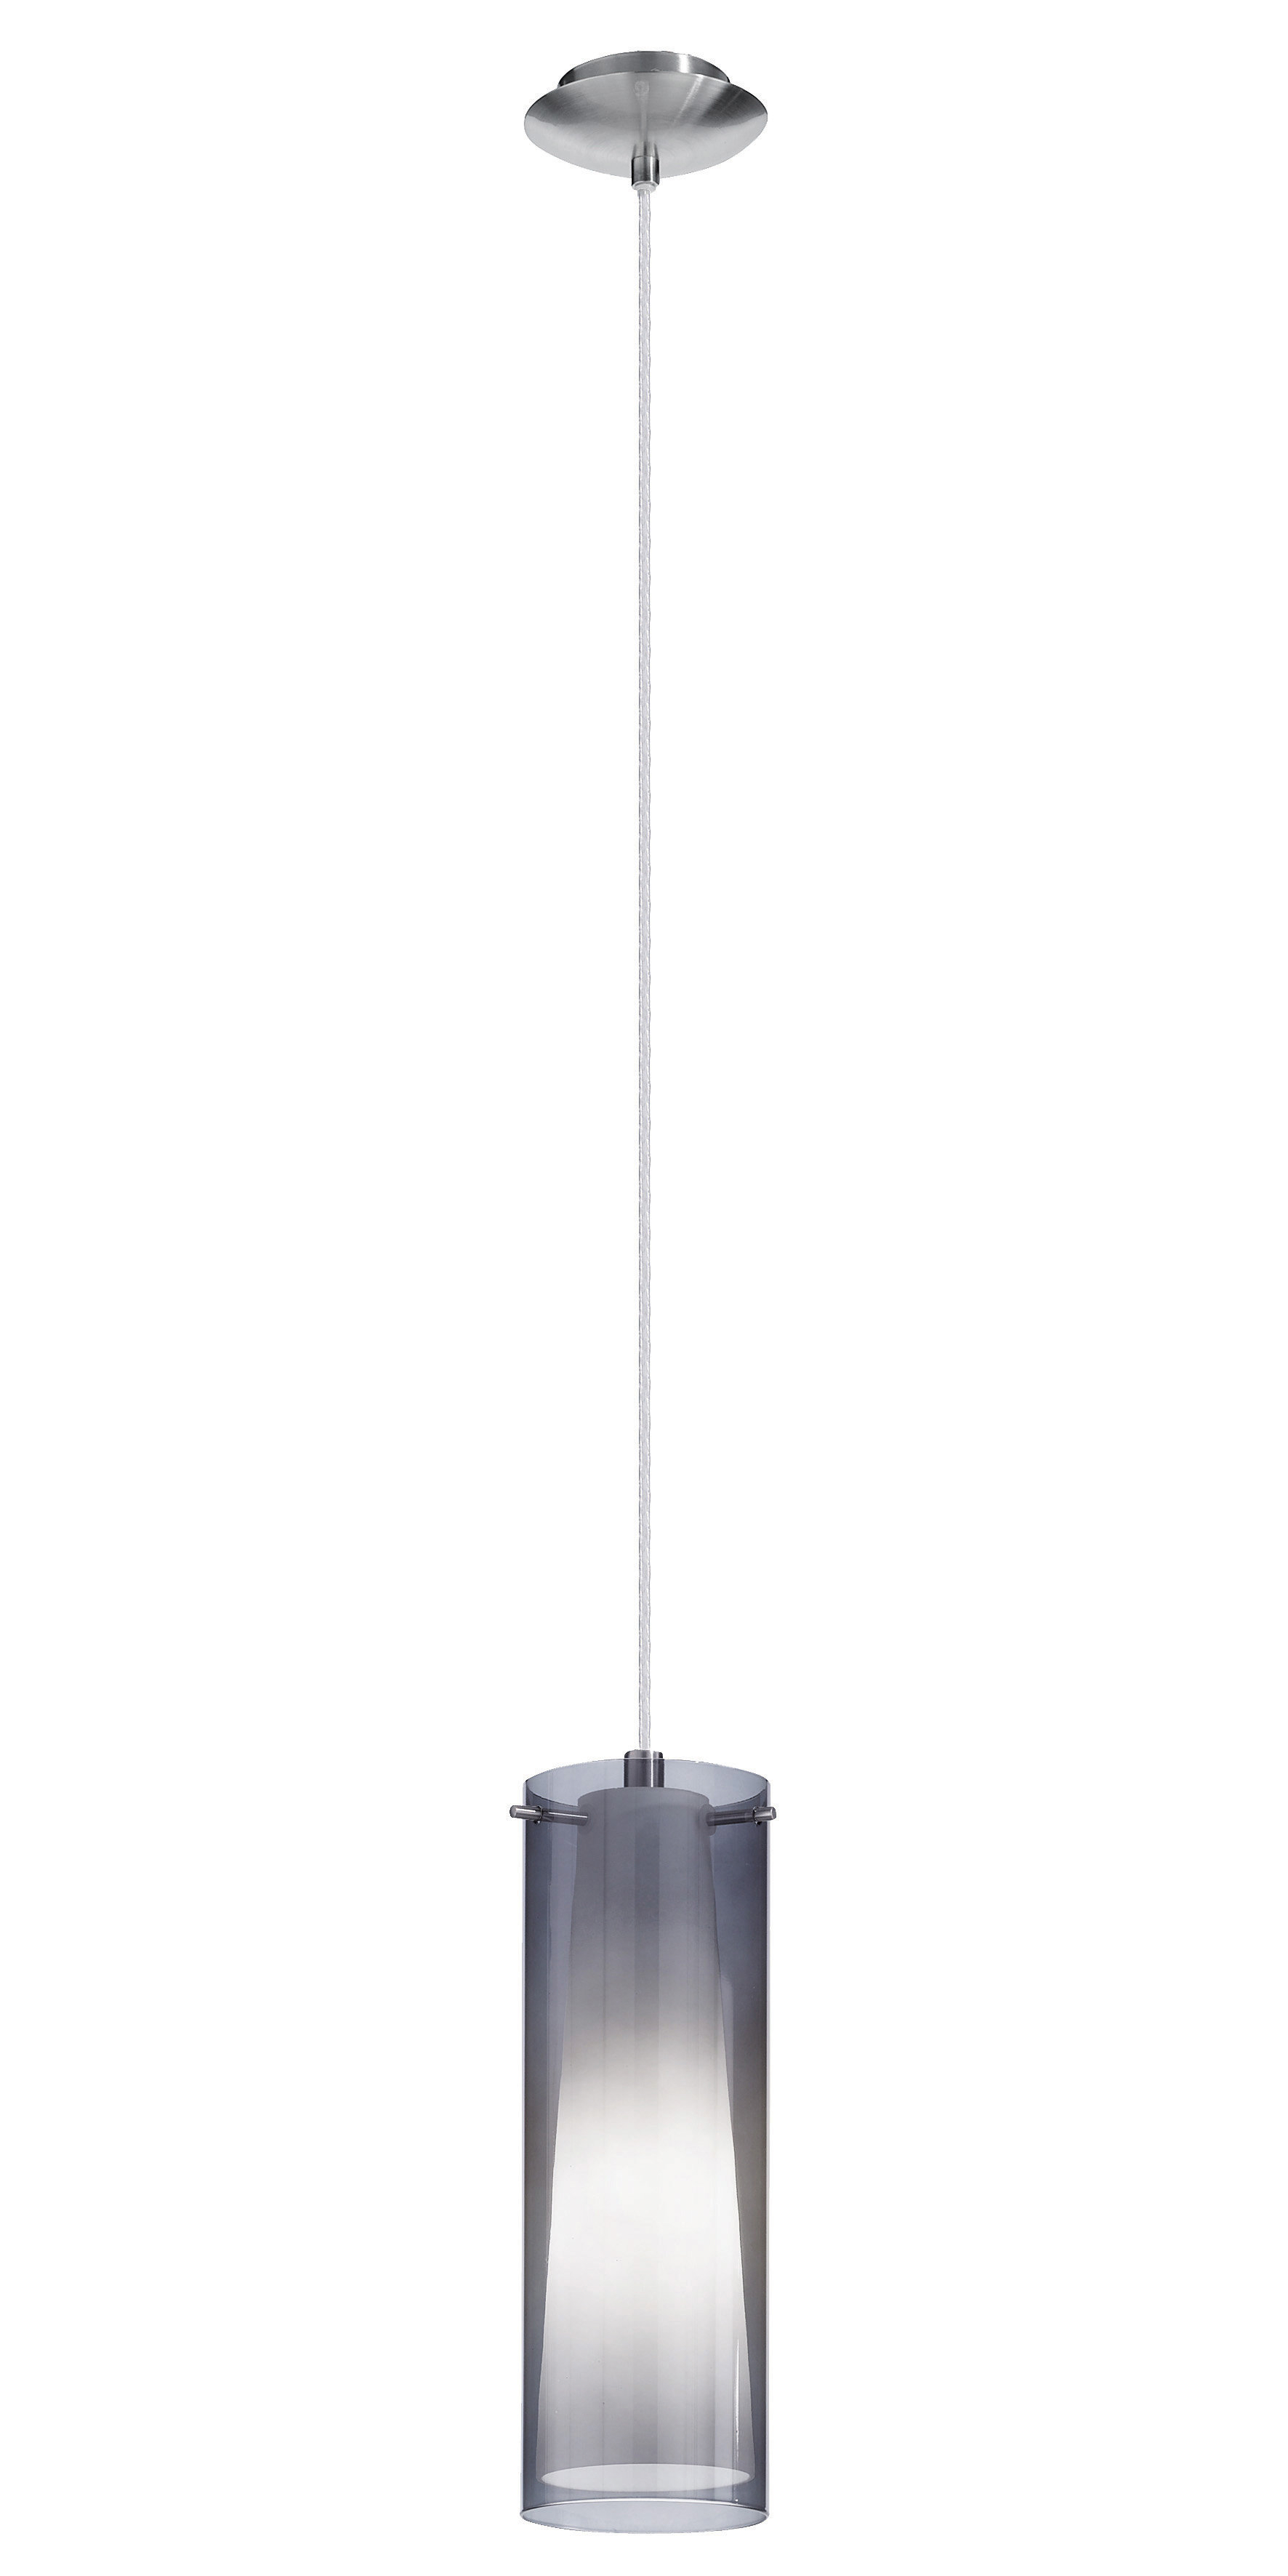 Brayden Studio Julia 1-Light Cylinder Pendant with Jayce 1-Light Cylinder Pendants (Image 5 of 30)